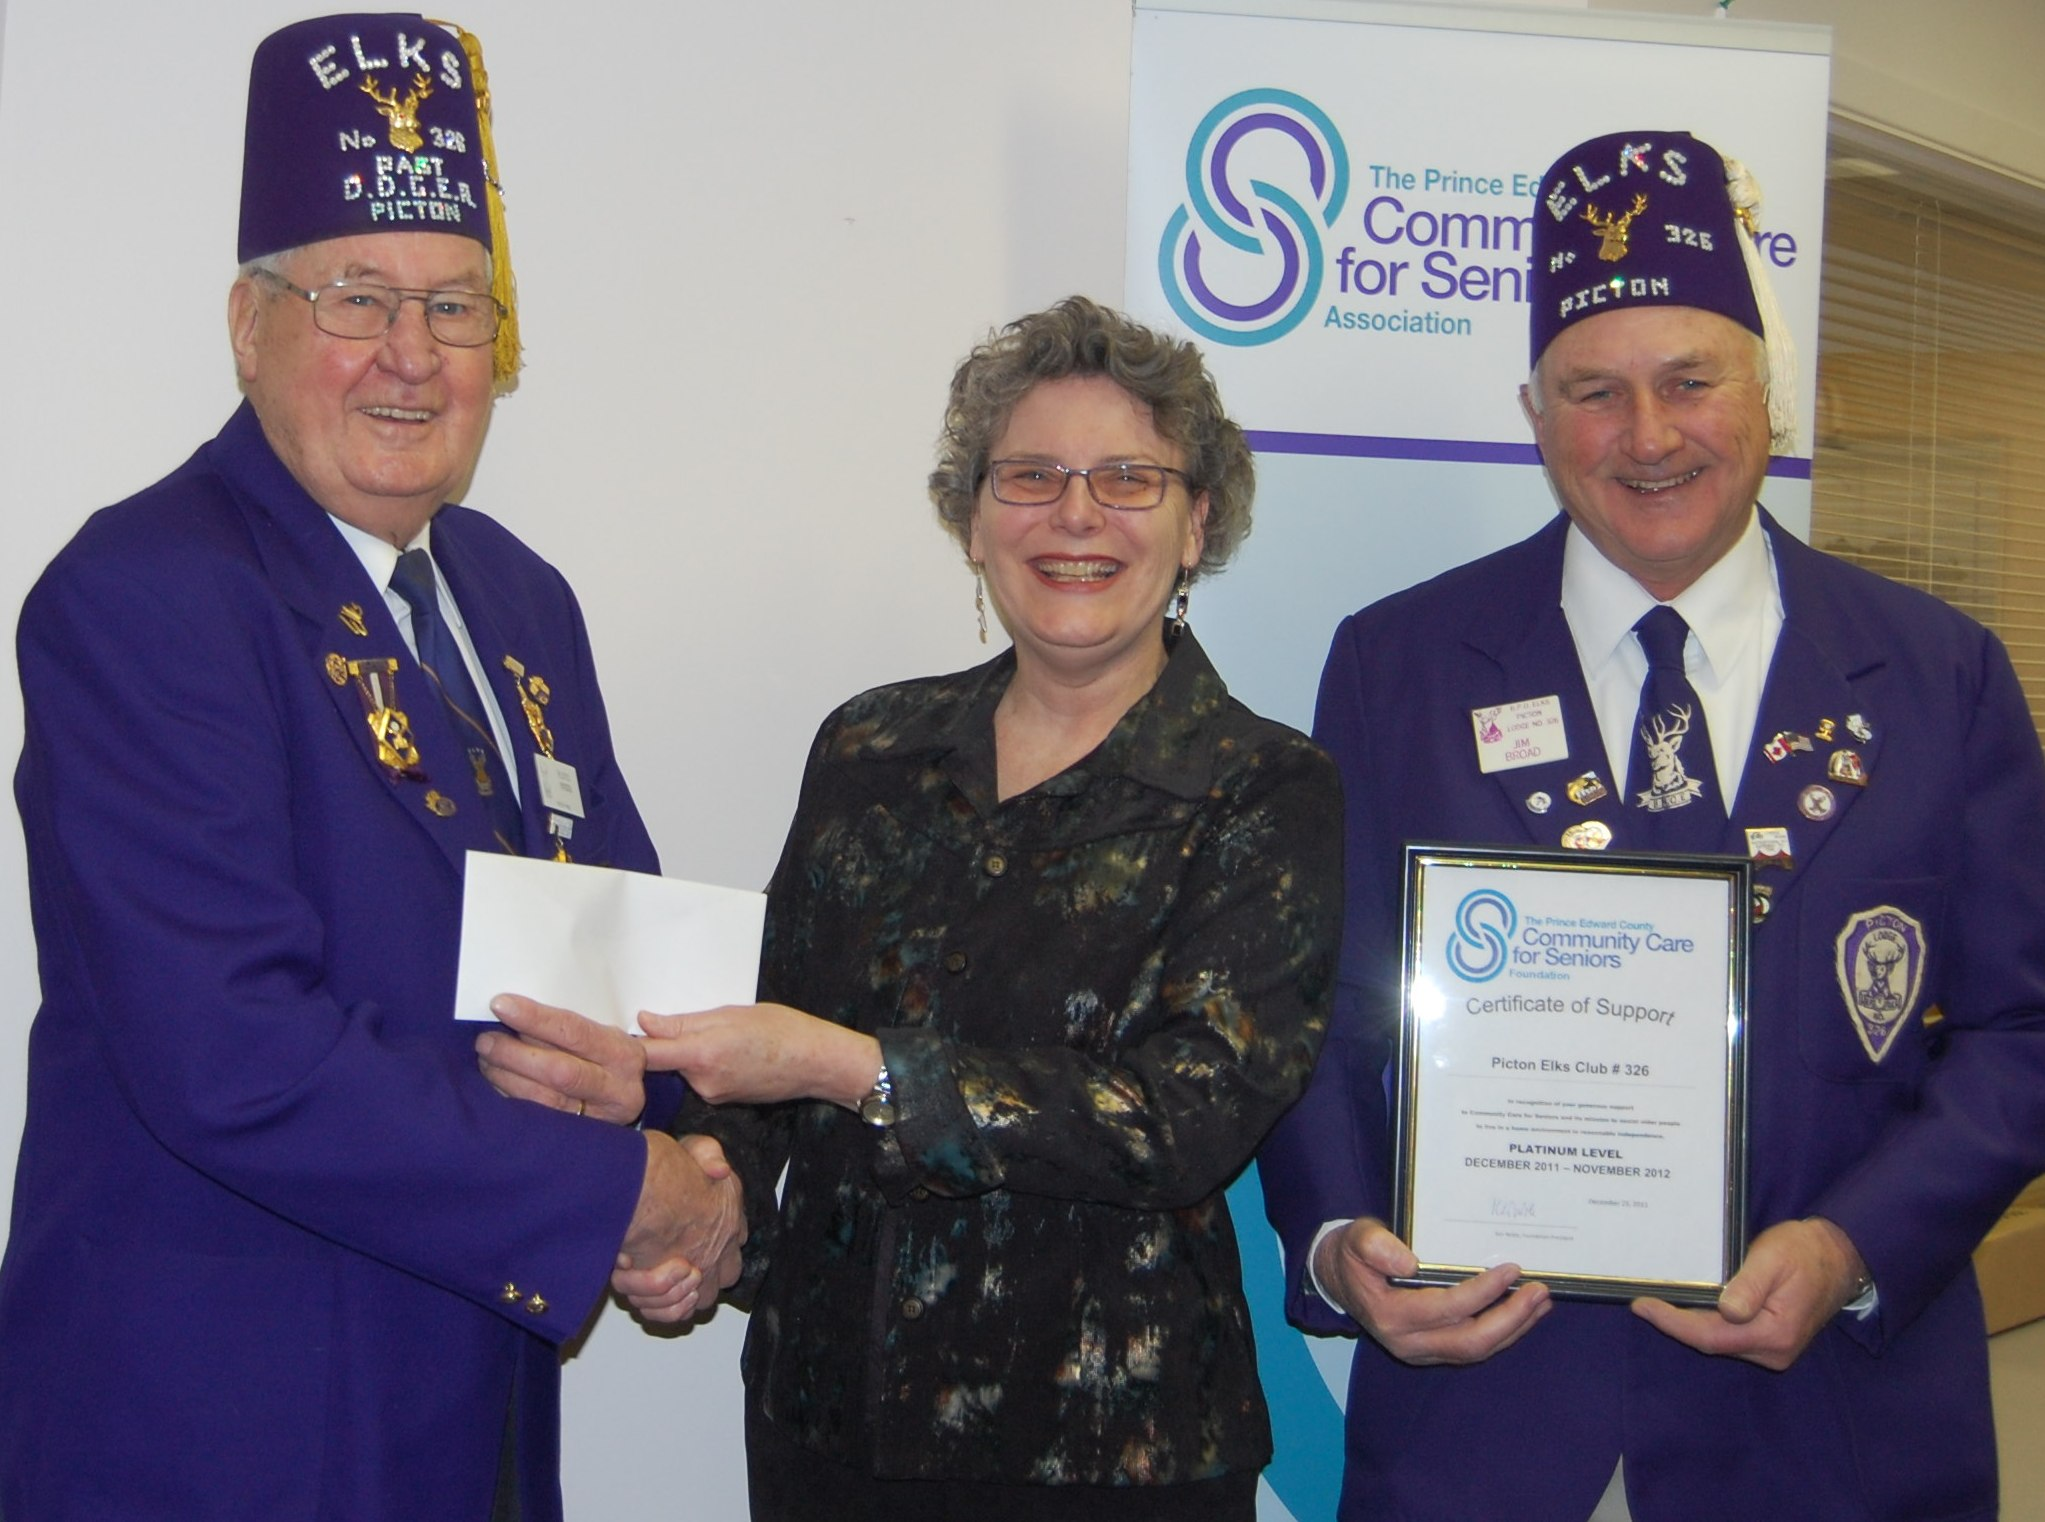 Elks Lodge finance committee presents cheque